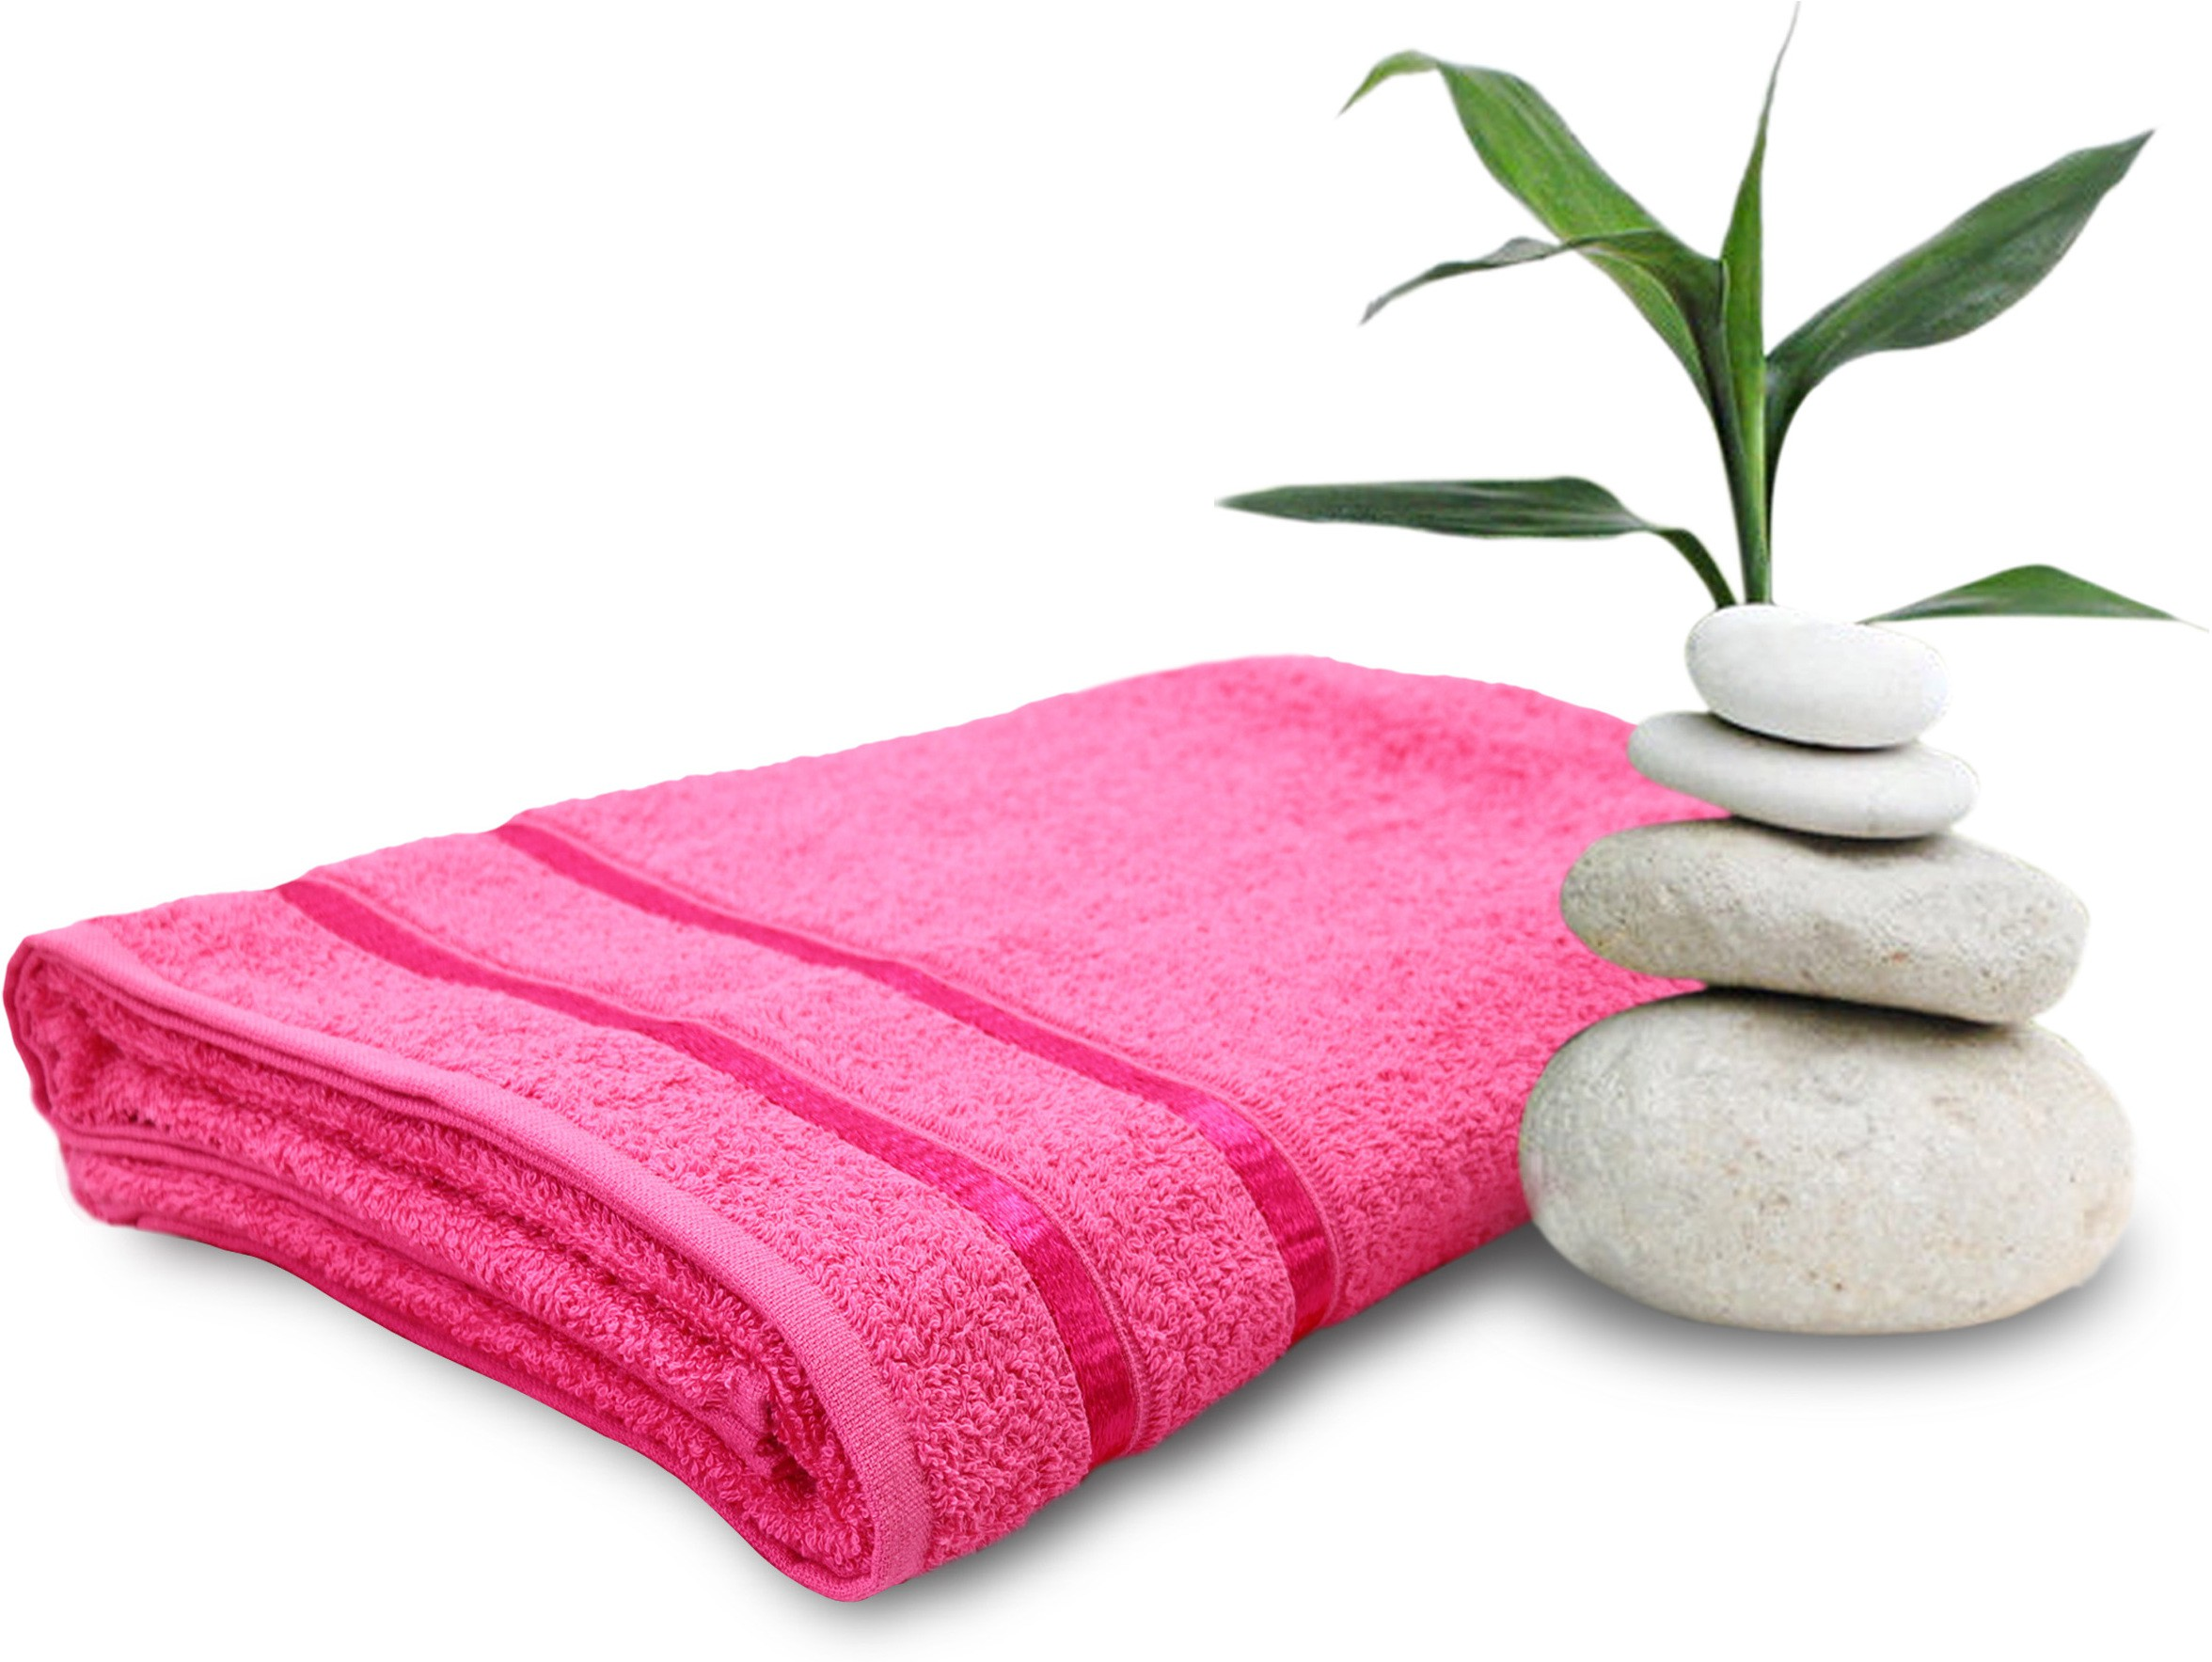 Deals | Under Rs.399 Single Bath Towels